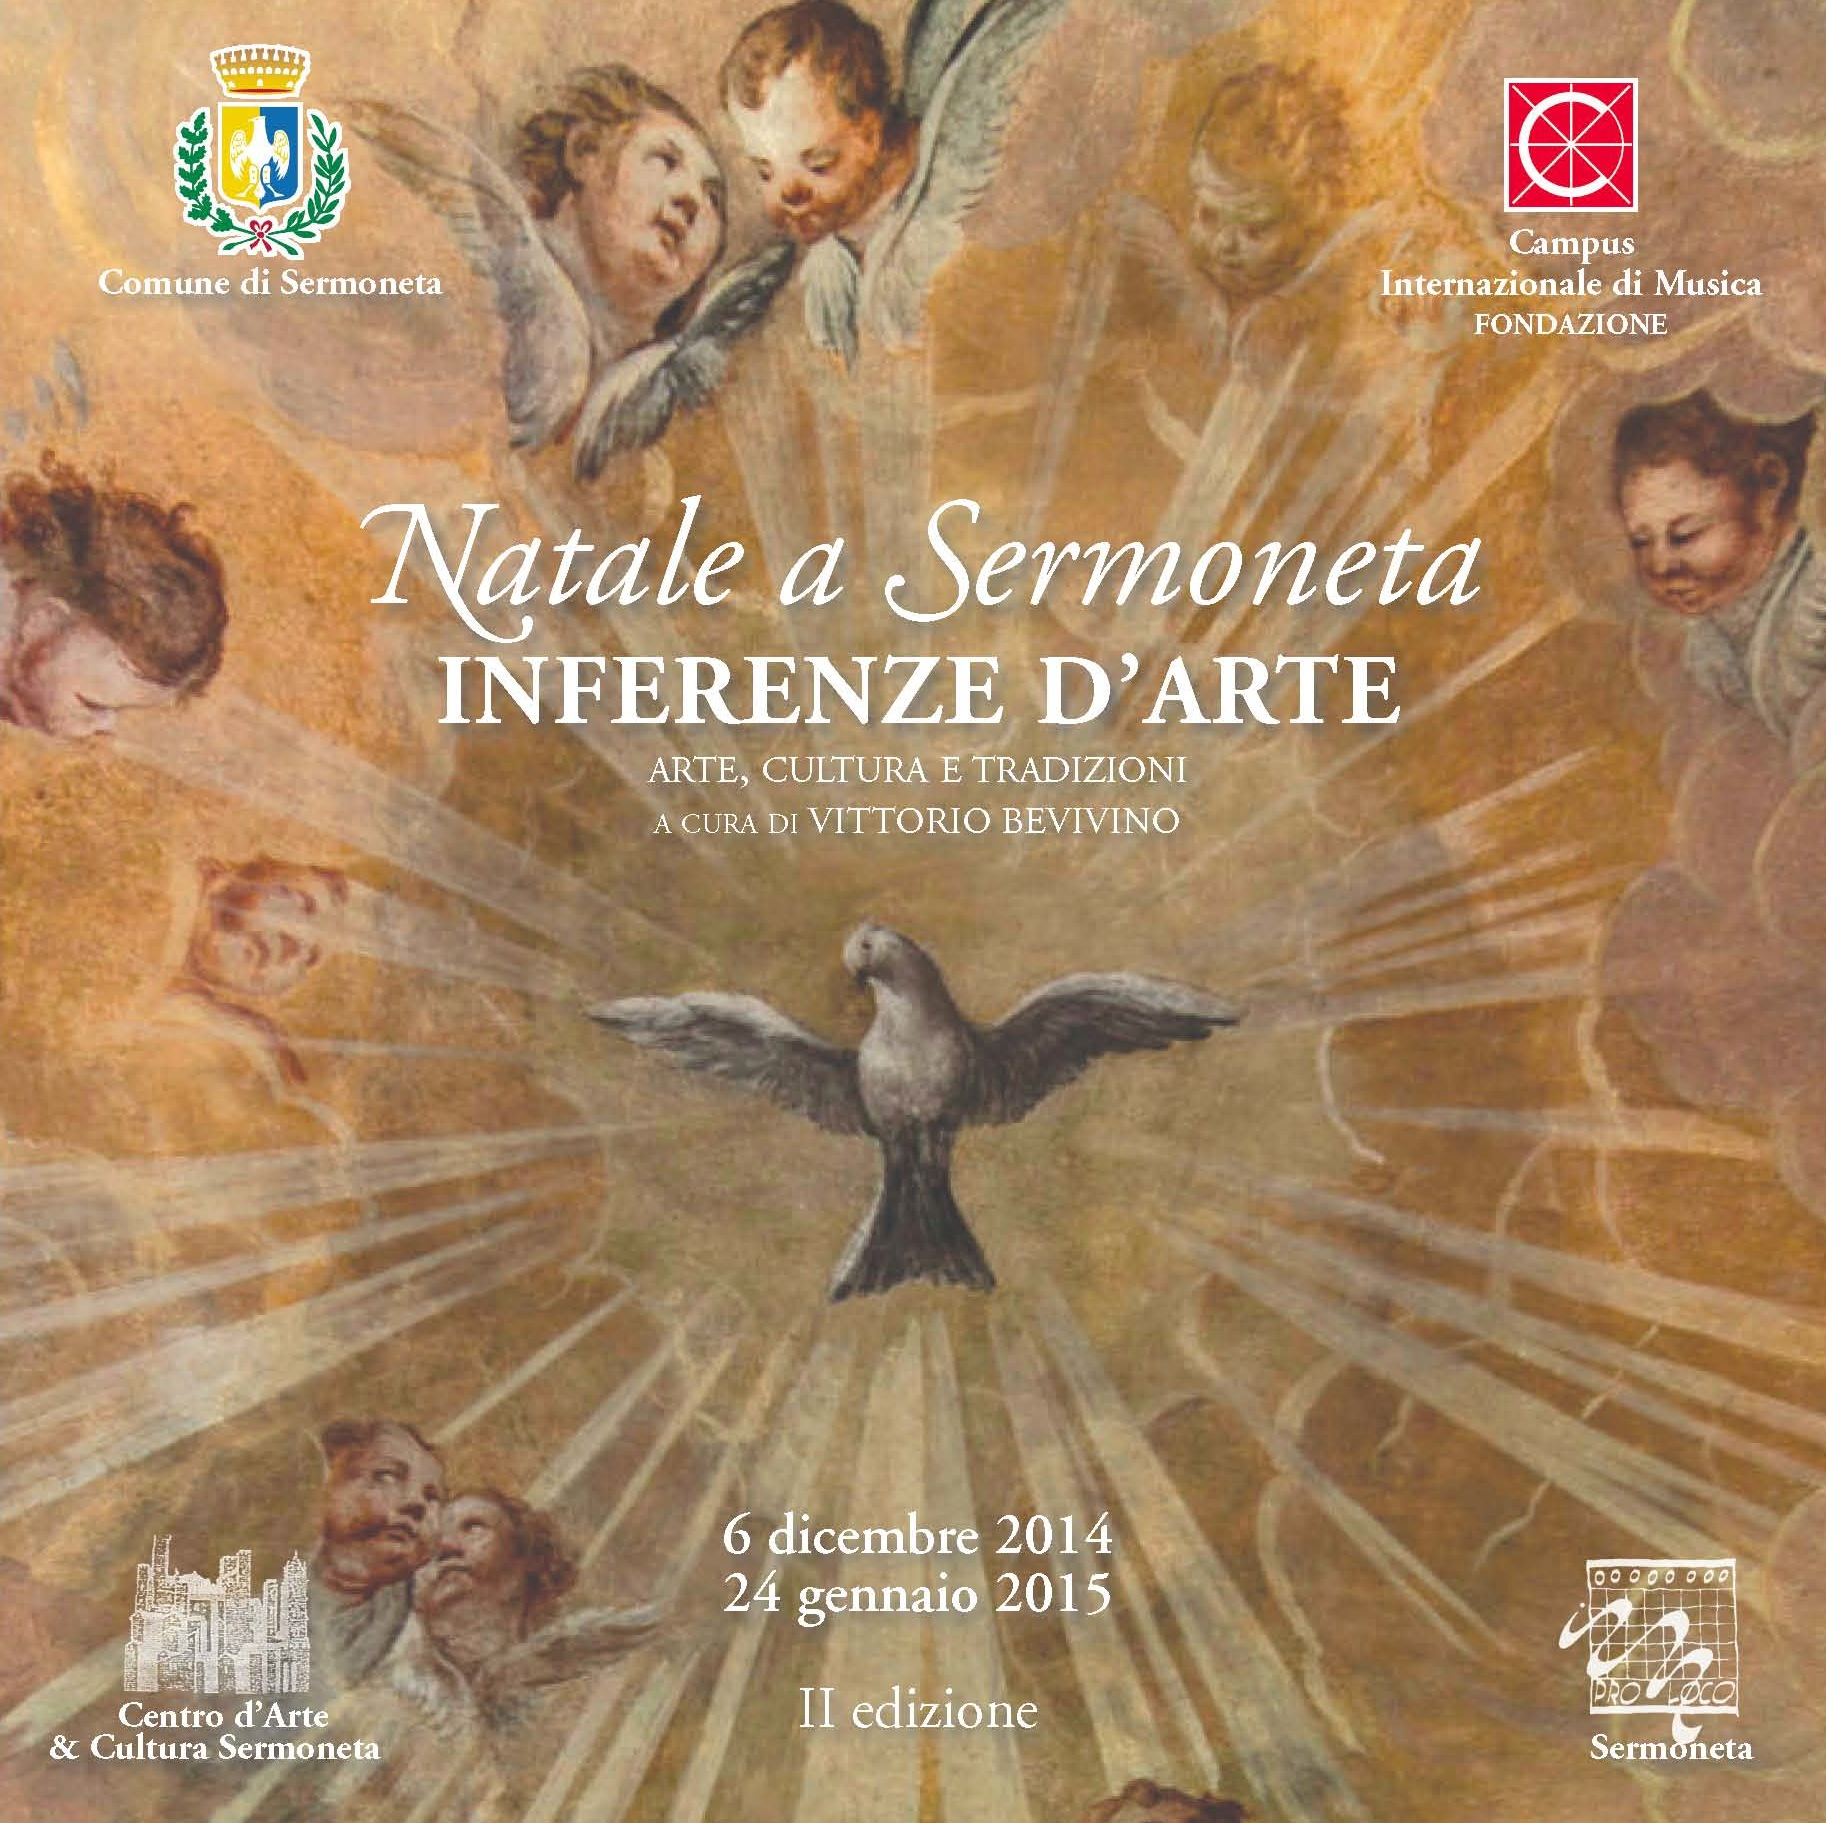 Interferenze d'arte Natale a Sermoneta 2014 2015